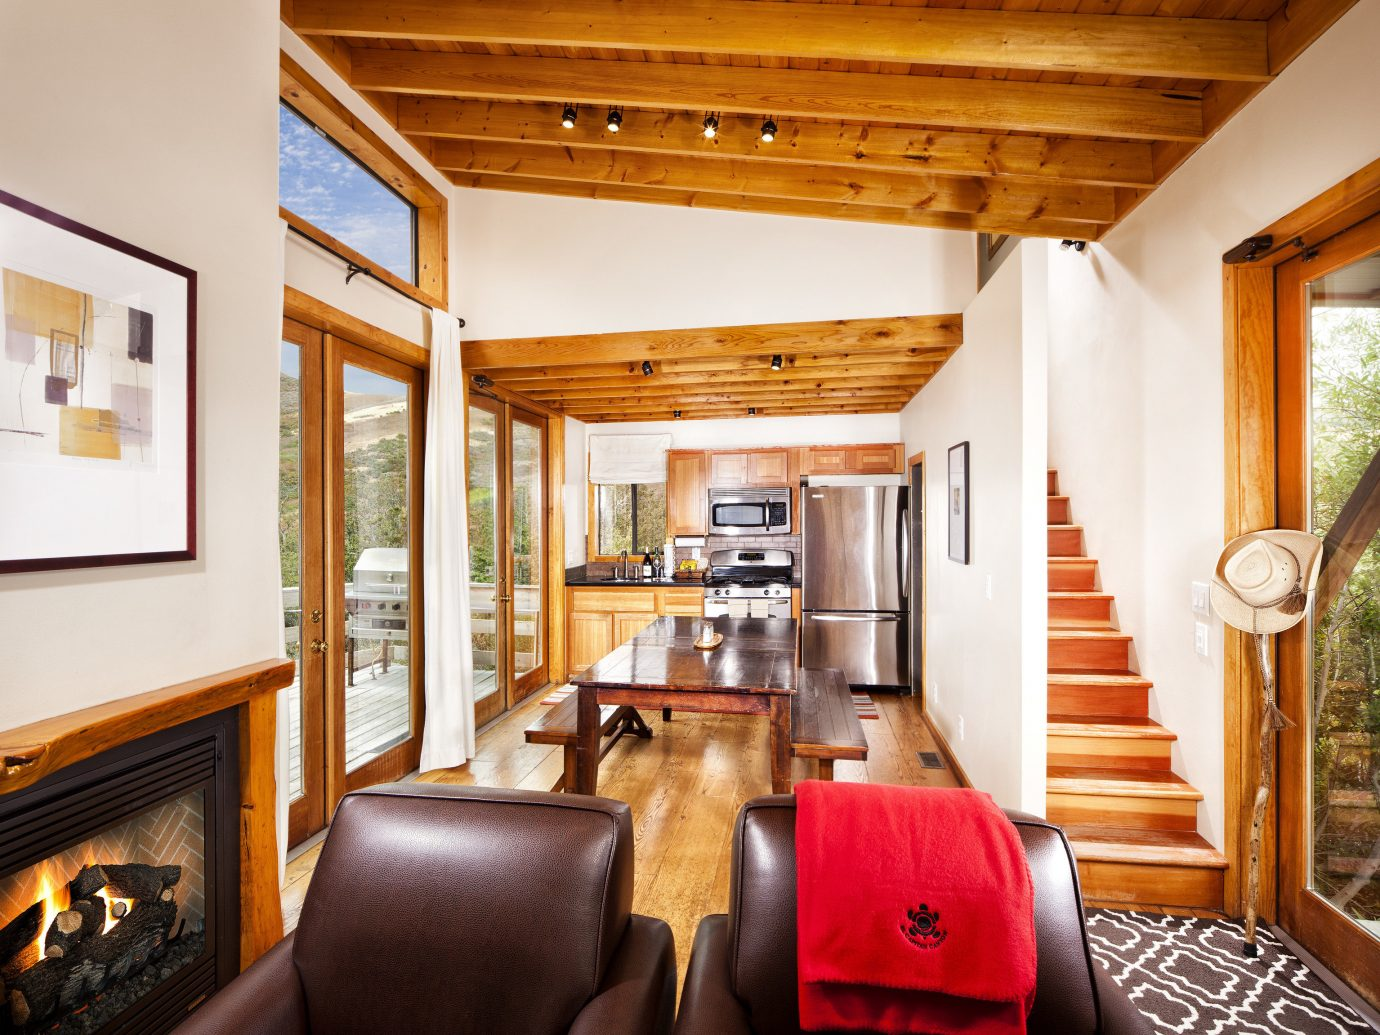 Boutique Hotels Fall Travel Hotels Outdoors + Adventure indoor wall ceiling room Living property estate home house living room cottage real estate interior design furniture farmhouse Suite Bedroom leather